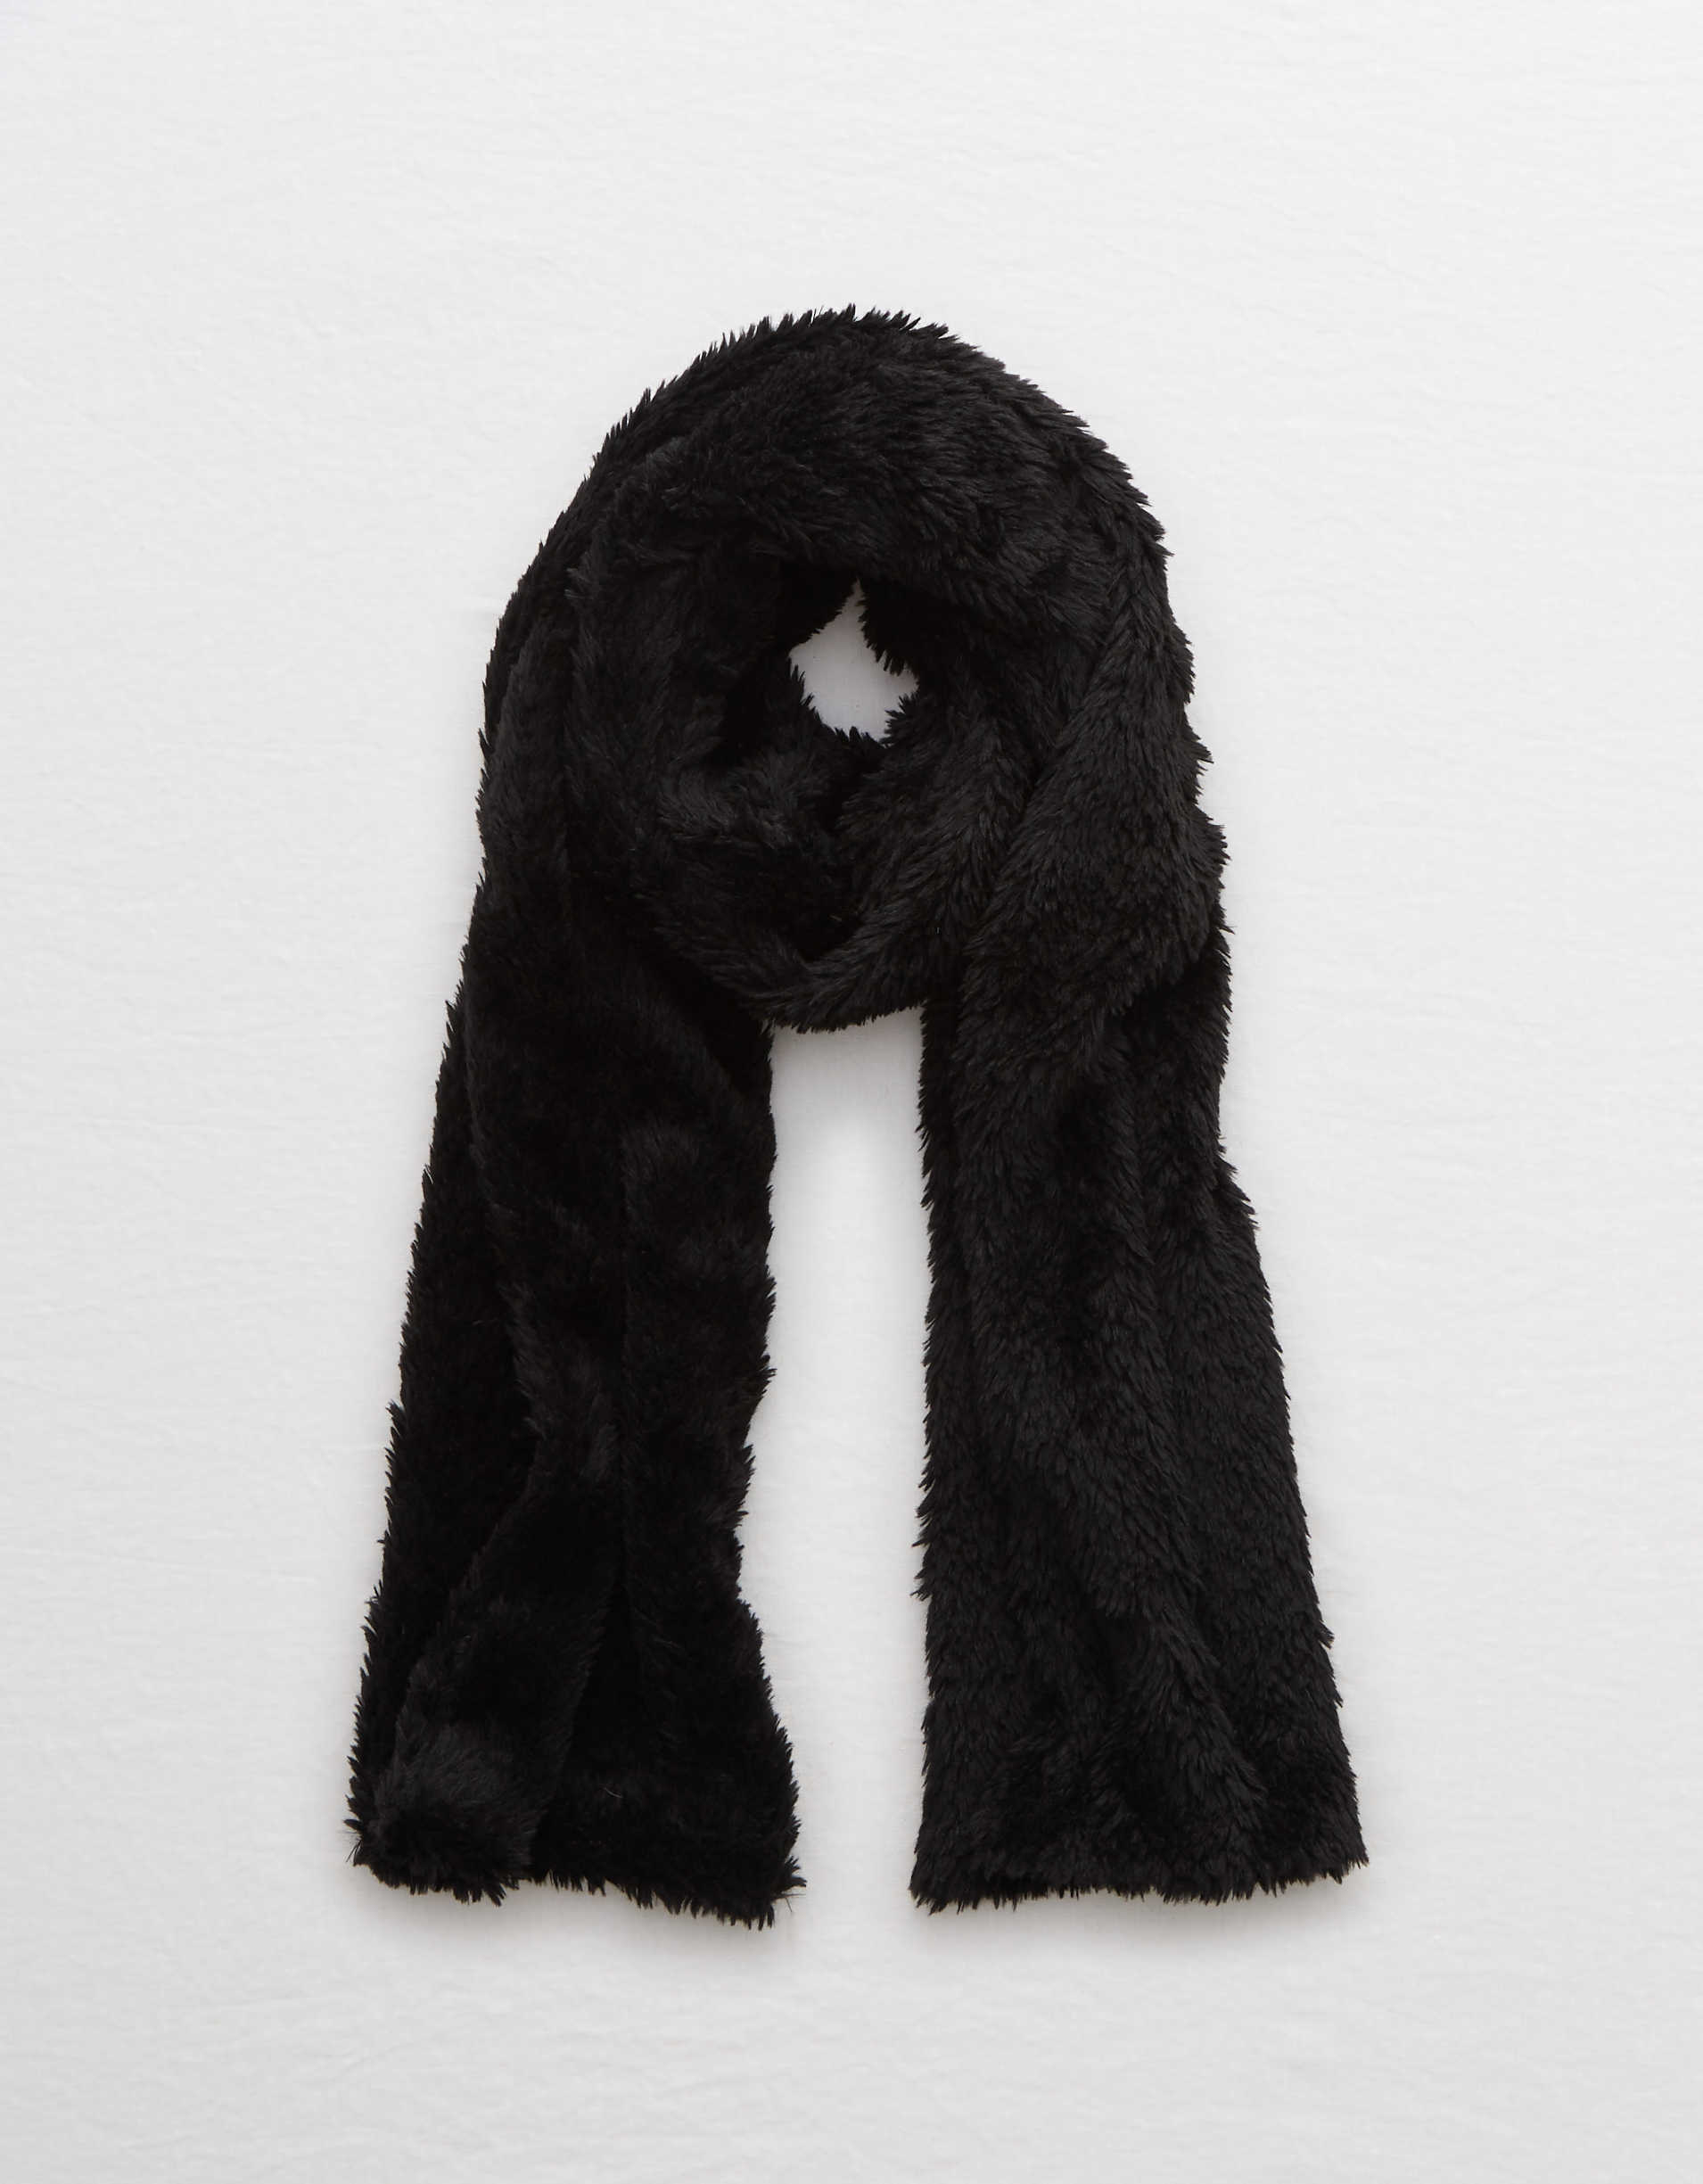 Aerie Knit Sherpa Scarf